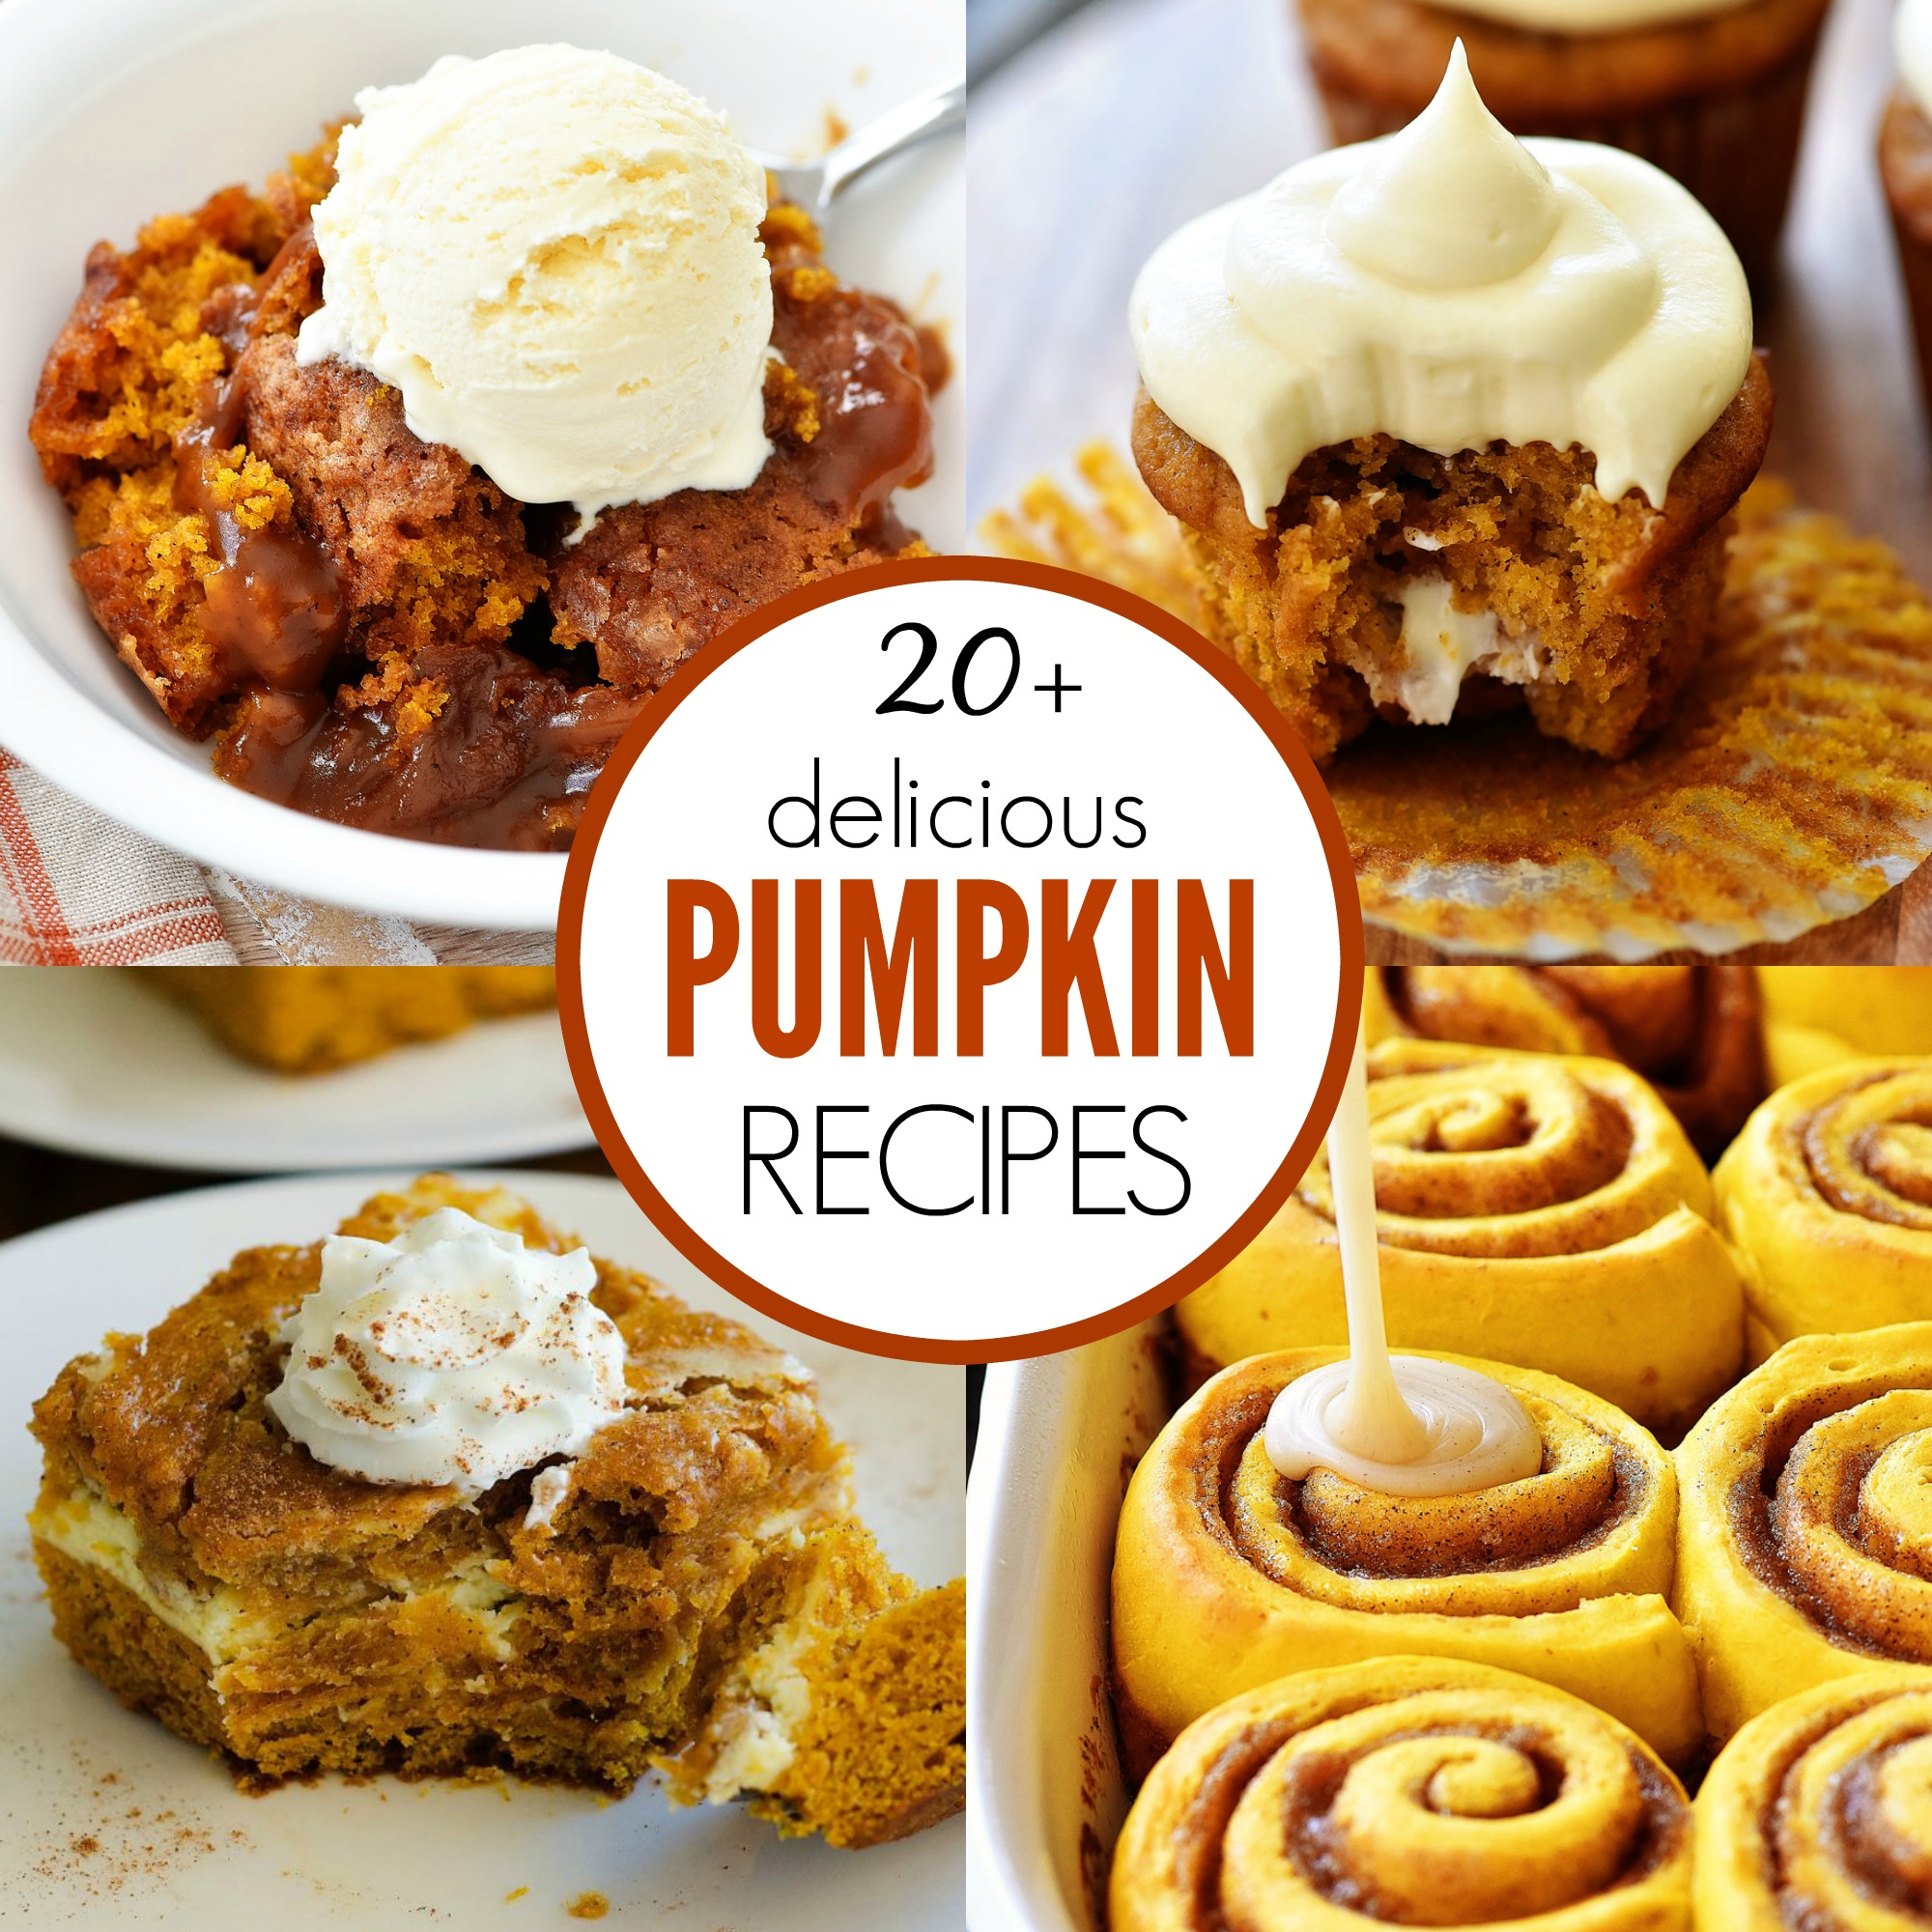 Twenty delicious Pumpkin recipes